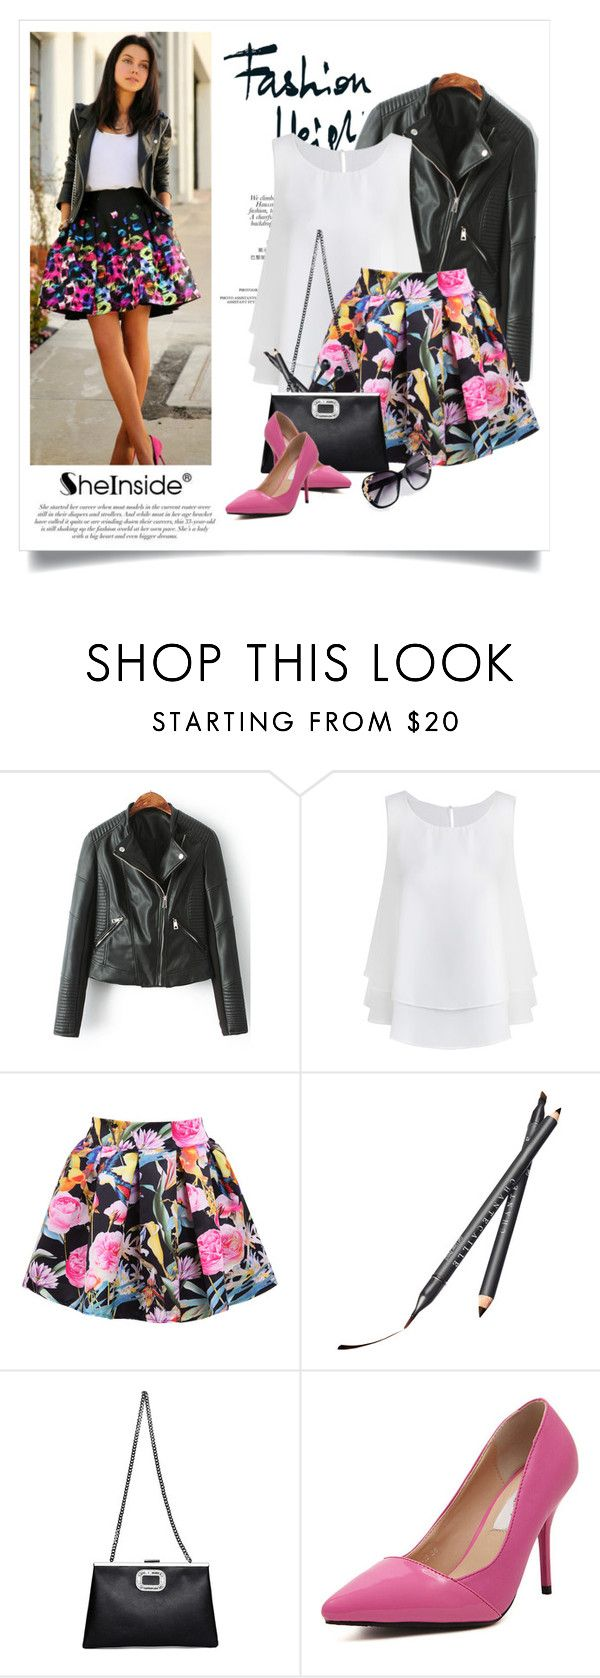 """..."" by yexyka ❤ liked on Polyvore featuring Chantecaille and Sheinside"